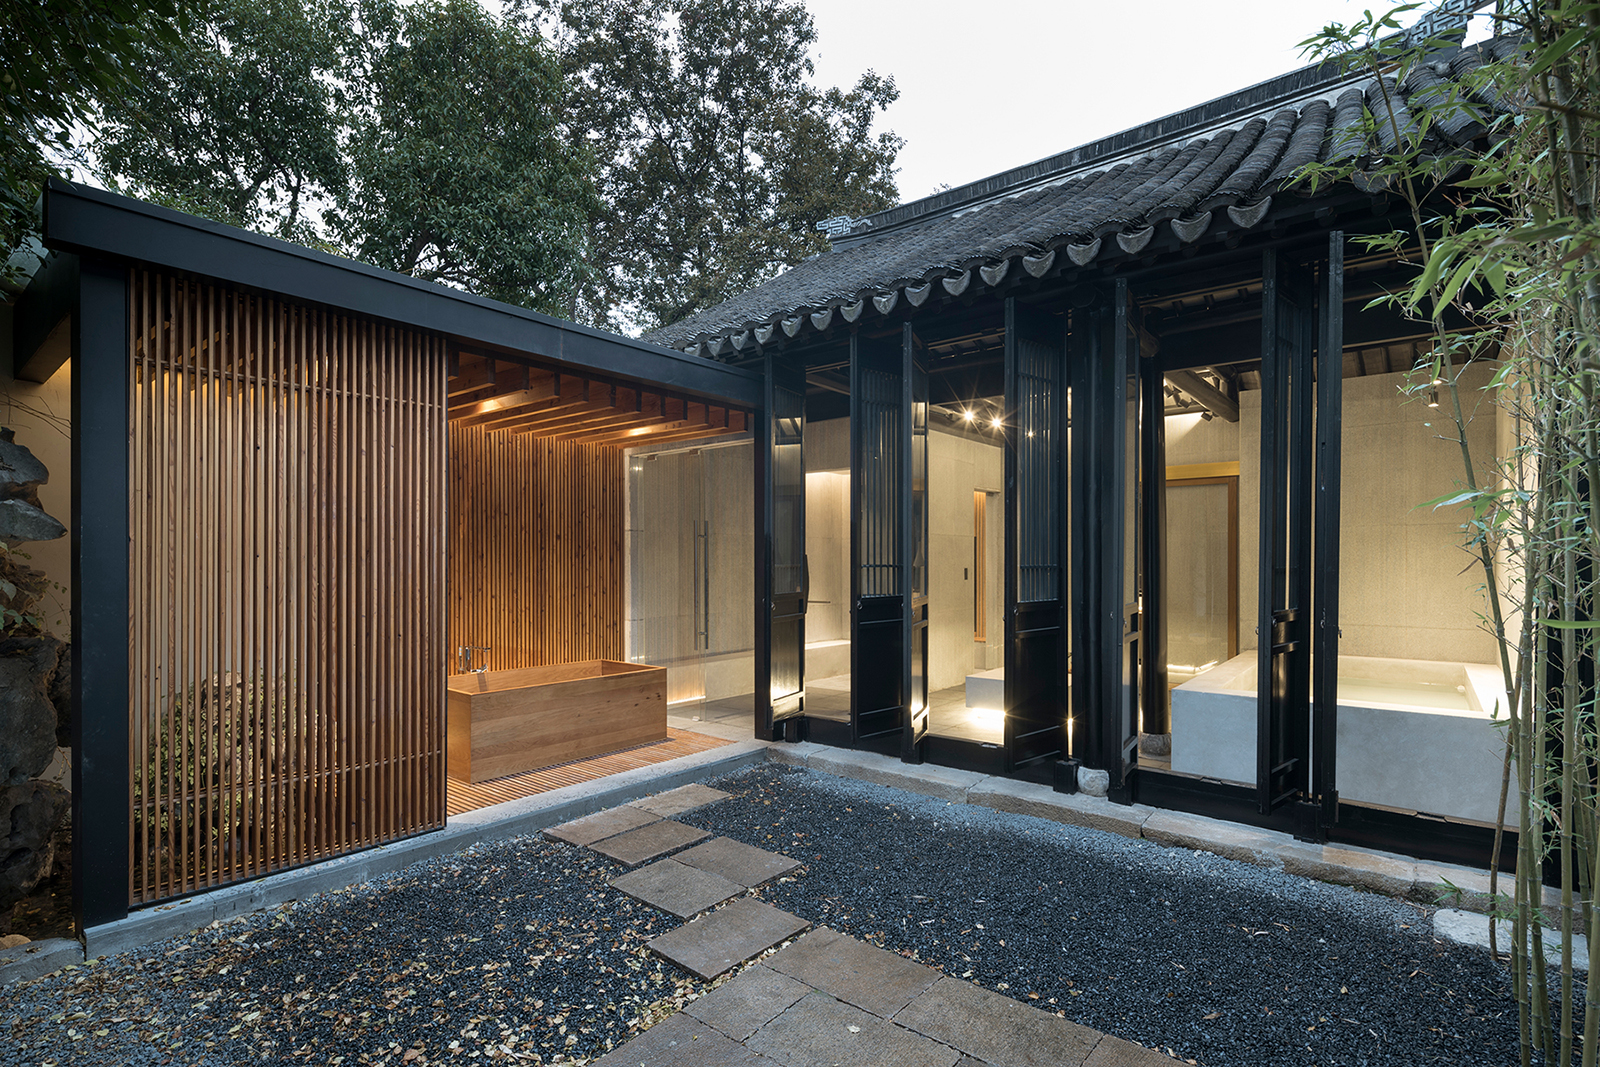 Gallery of Historic House Renovation in Suzhou / B.L.U.E